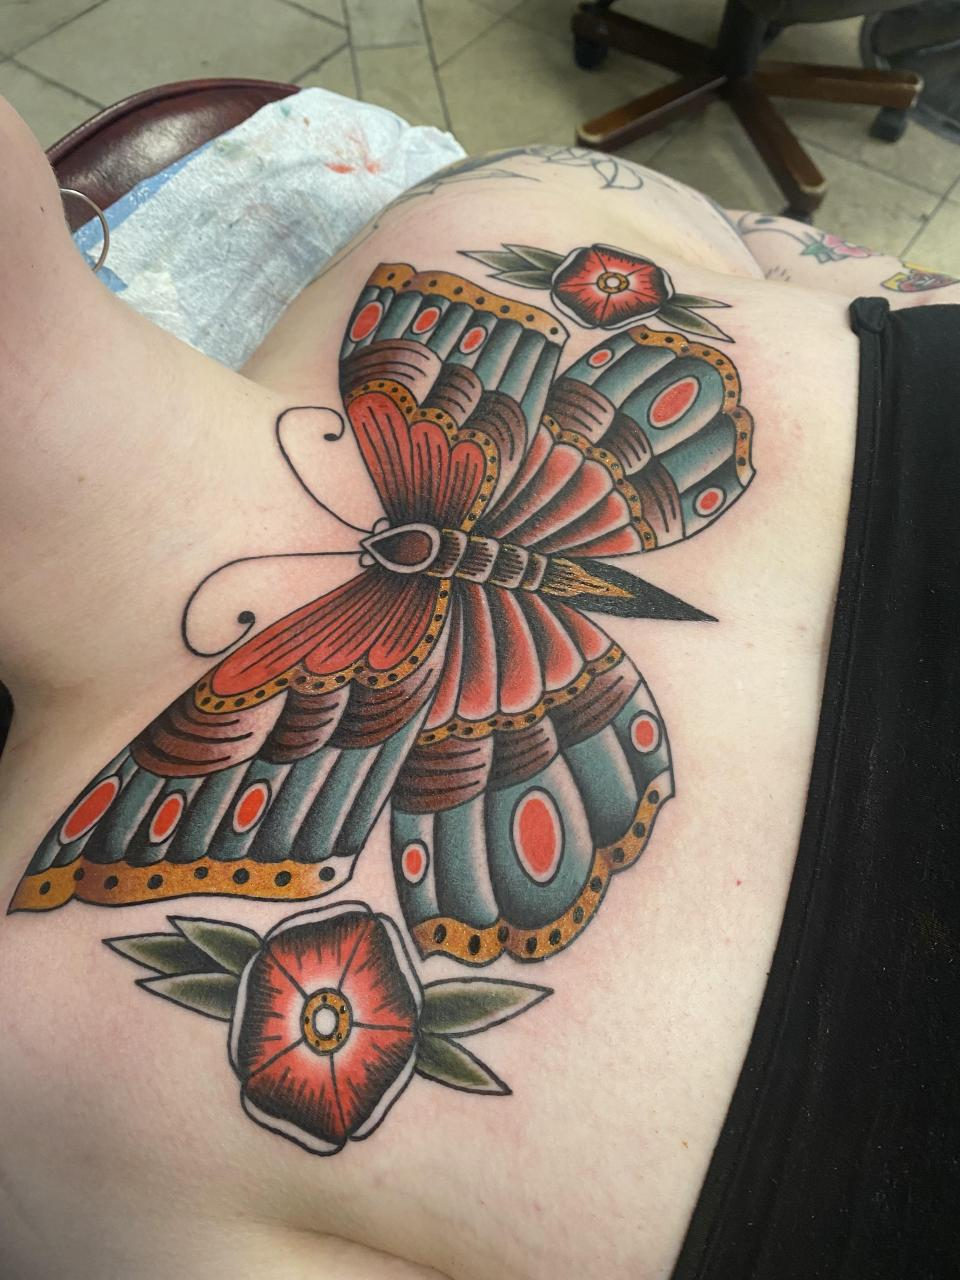 Traditional Butterfly chest tattoo done by CJ Scesa in Ft. Lauderdale, Florida